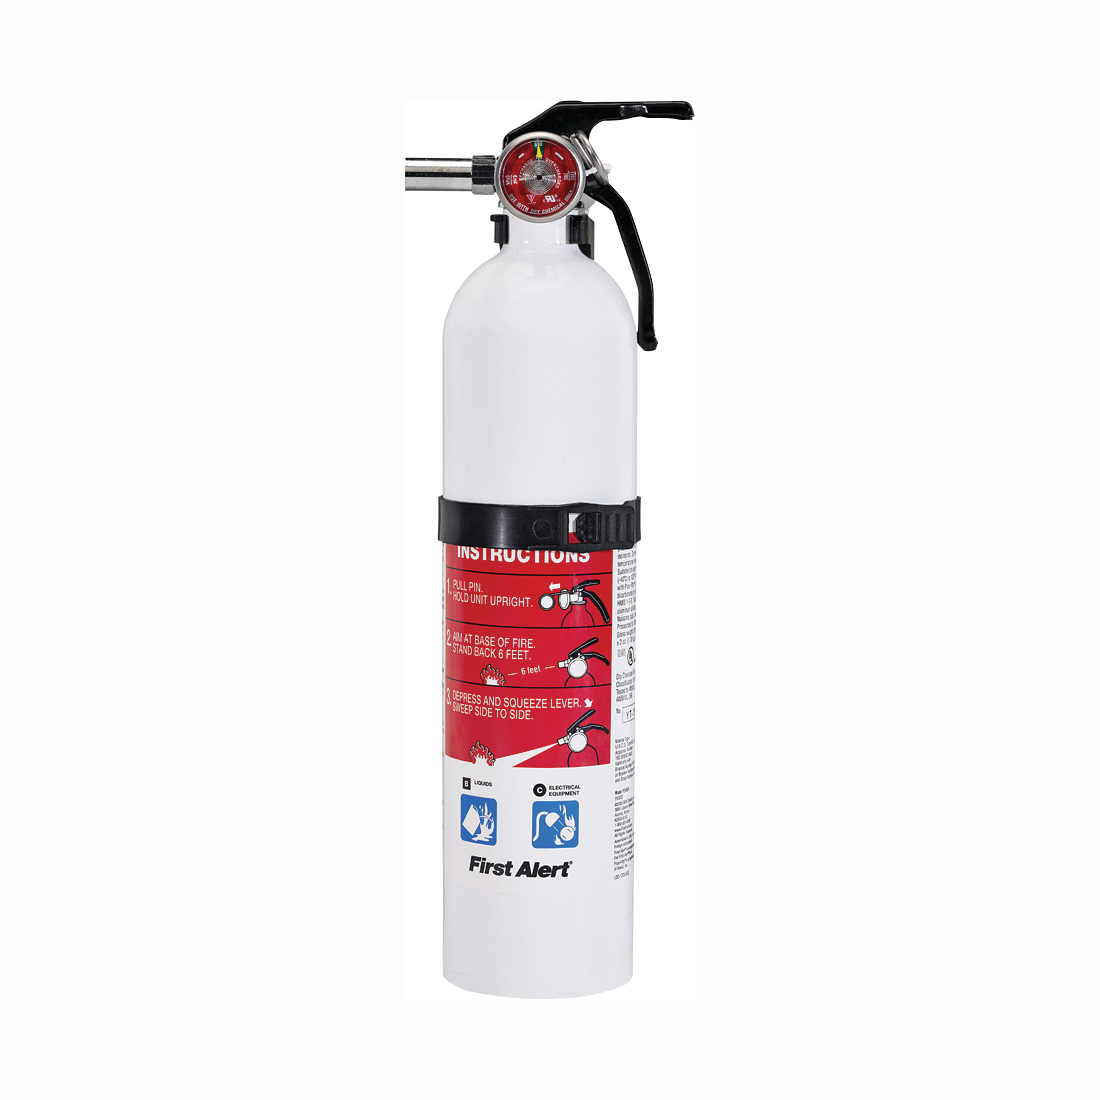 Picture of FIRST ALERT REC5 Rechargeable Fire Extinguisher, 2 lb Capacity, Sodium Bicarbonate, 5-B:C Class